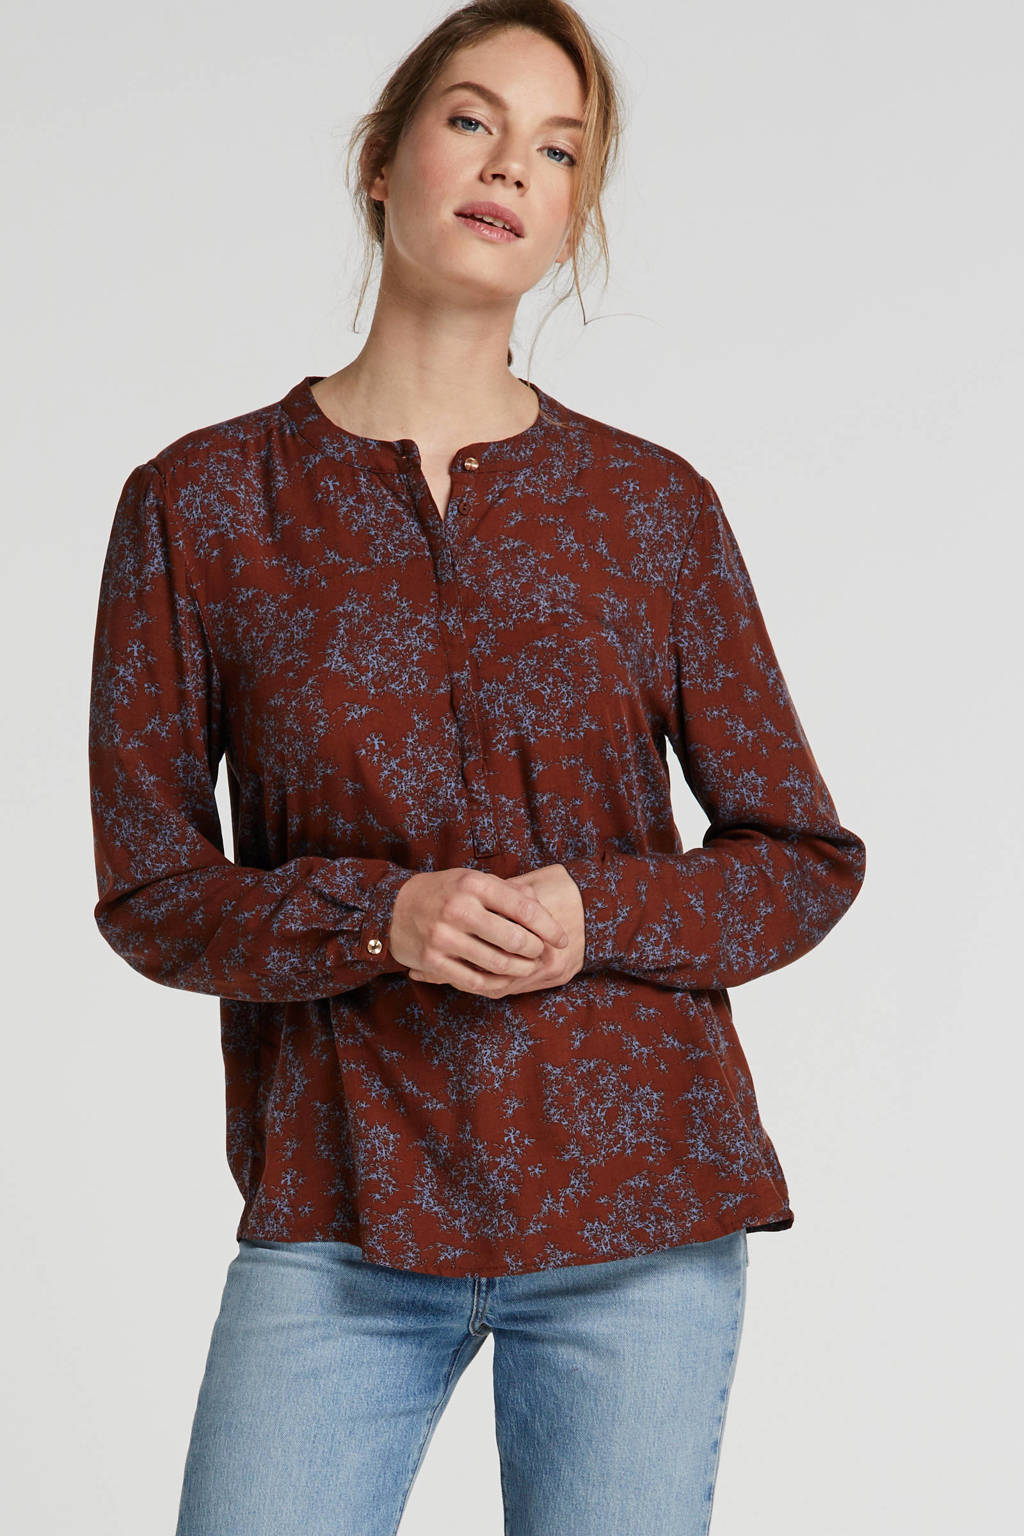 FREEQUENT top met all over print bruin/lila, Bruin/lila